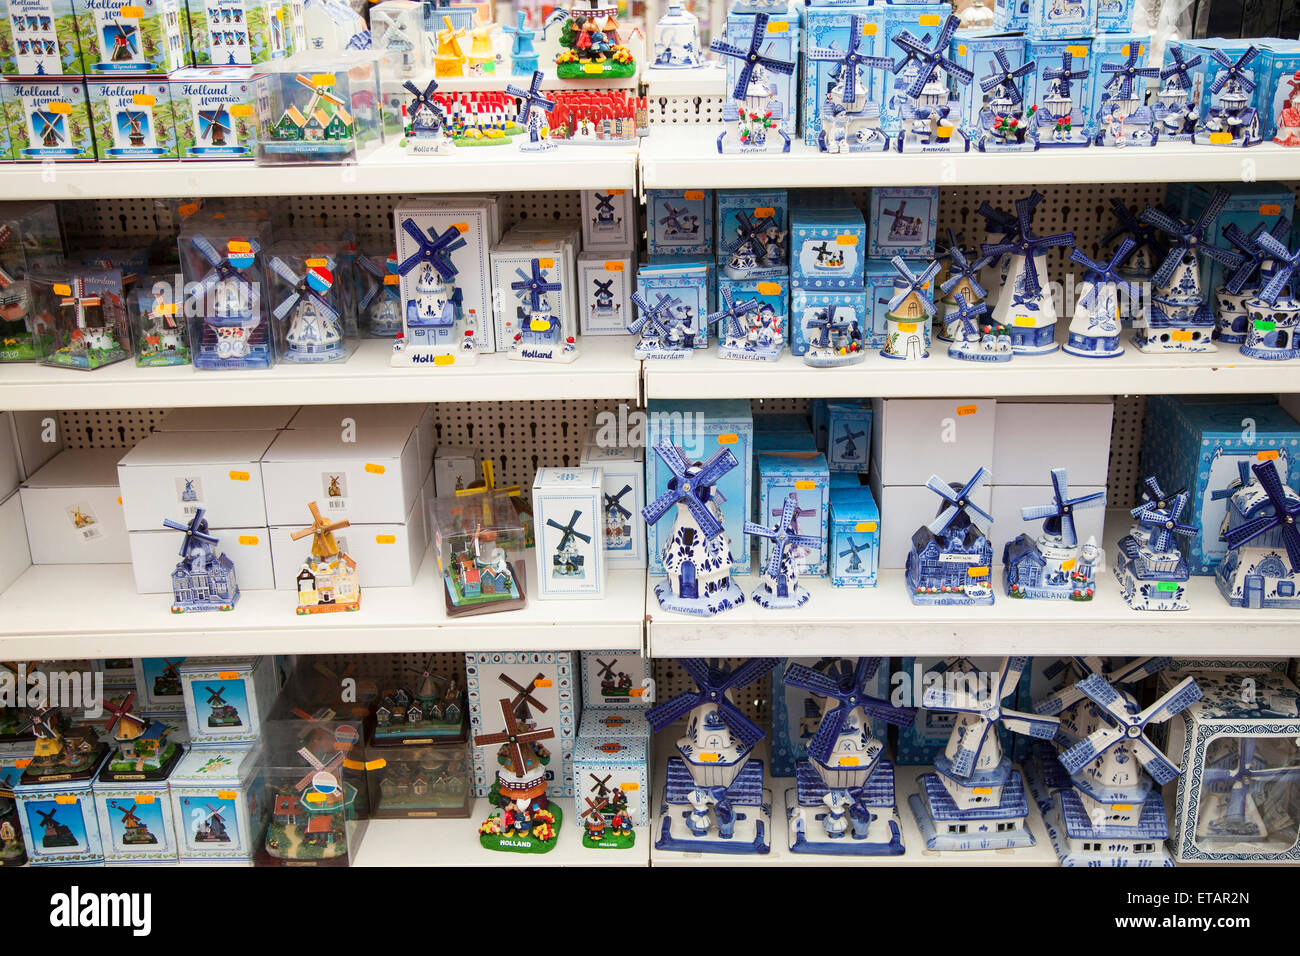 Delft Blue Windmills And Other Souvenirs On Shelves In